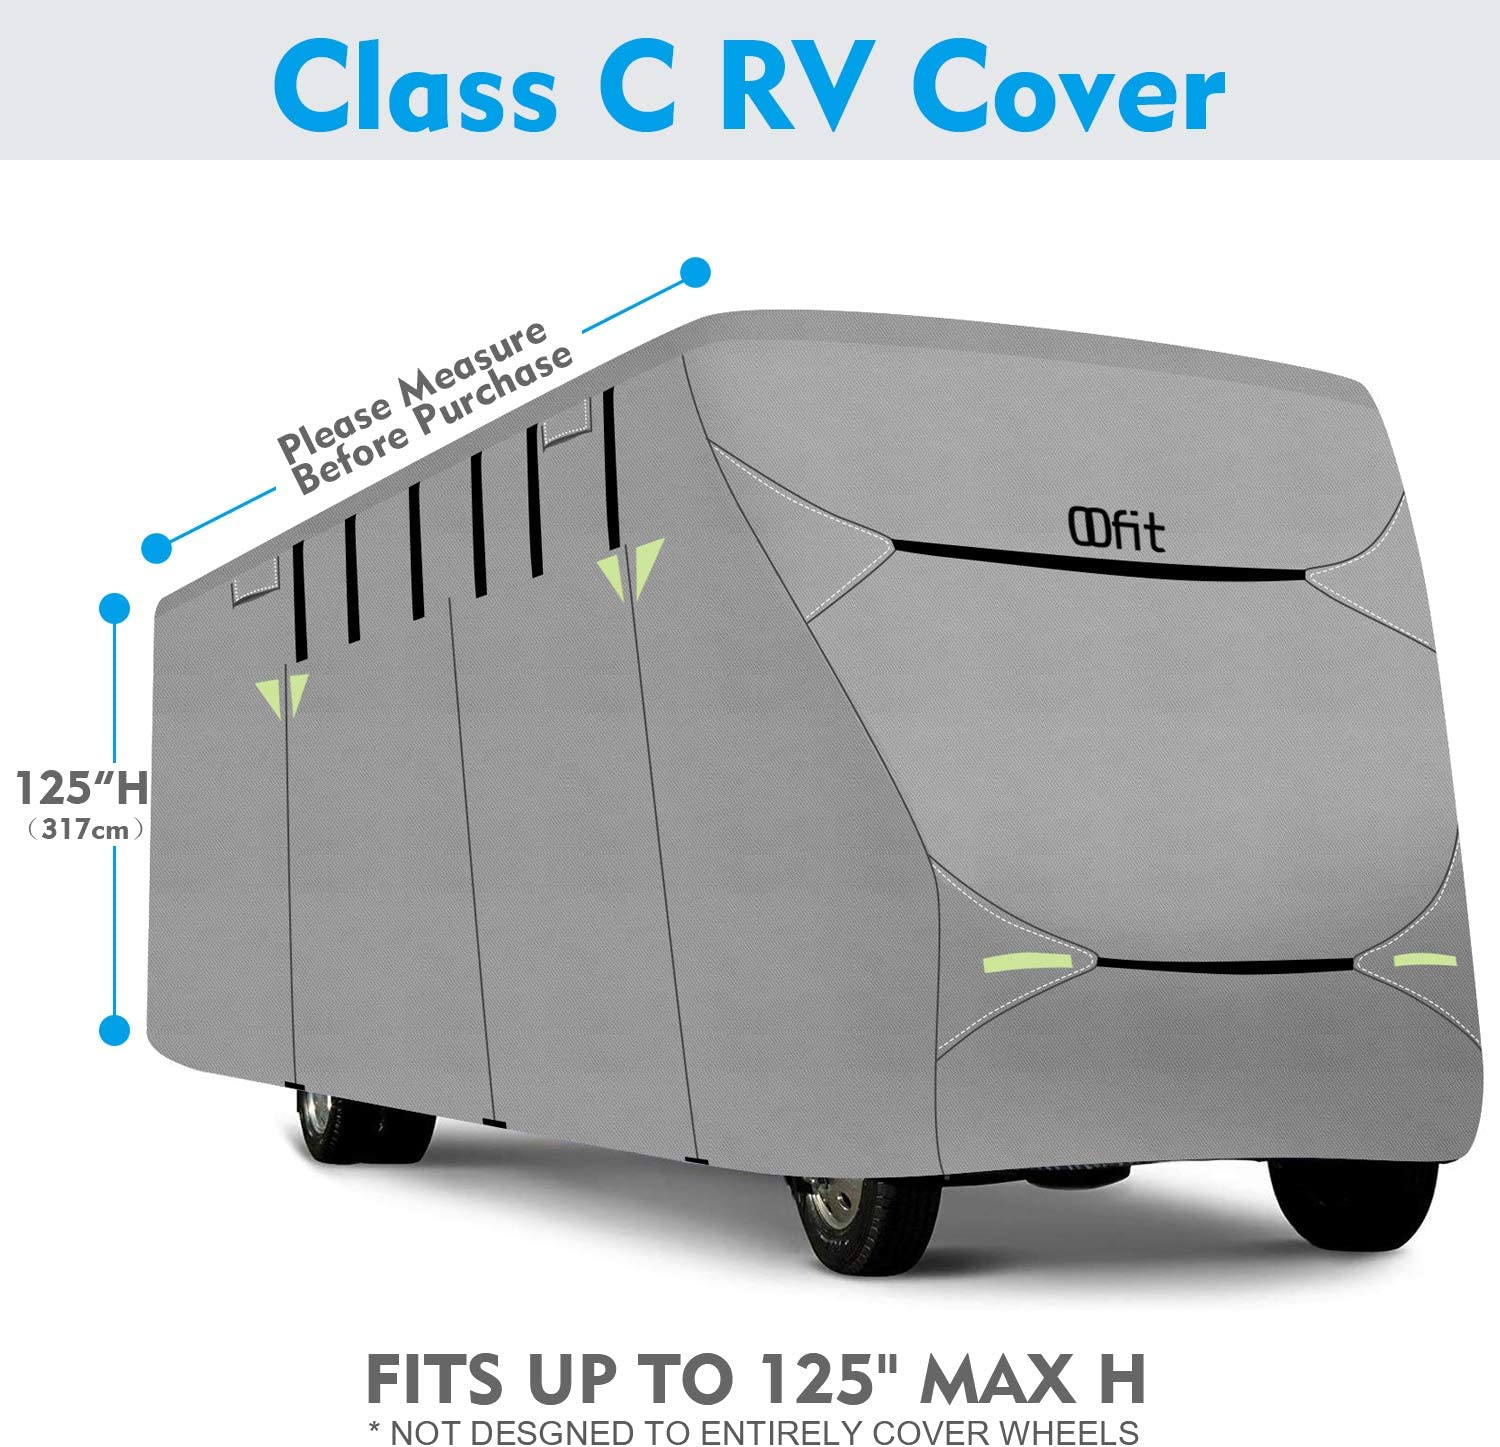 Fits 29-32 RVs Entrance Zippers /& Storage Bag OOFIT Extra-Thick 4-ply Class C Motorhome RV Cover Breathable Weather-Proof Anti-UV Motorhome Cover with Adhesive Repair Patch